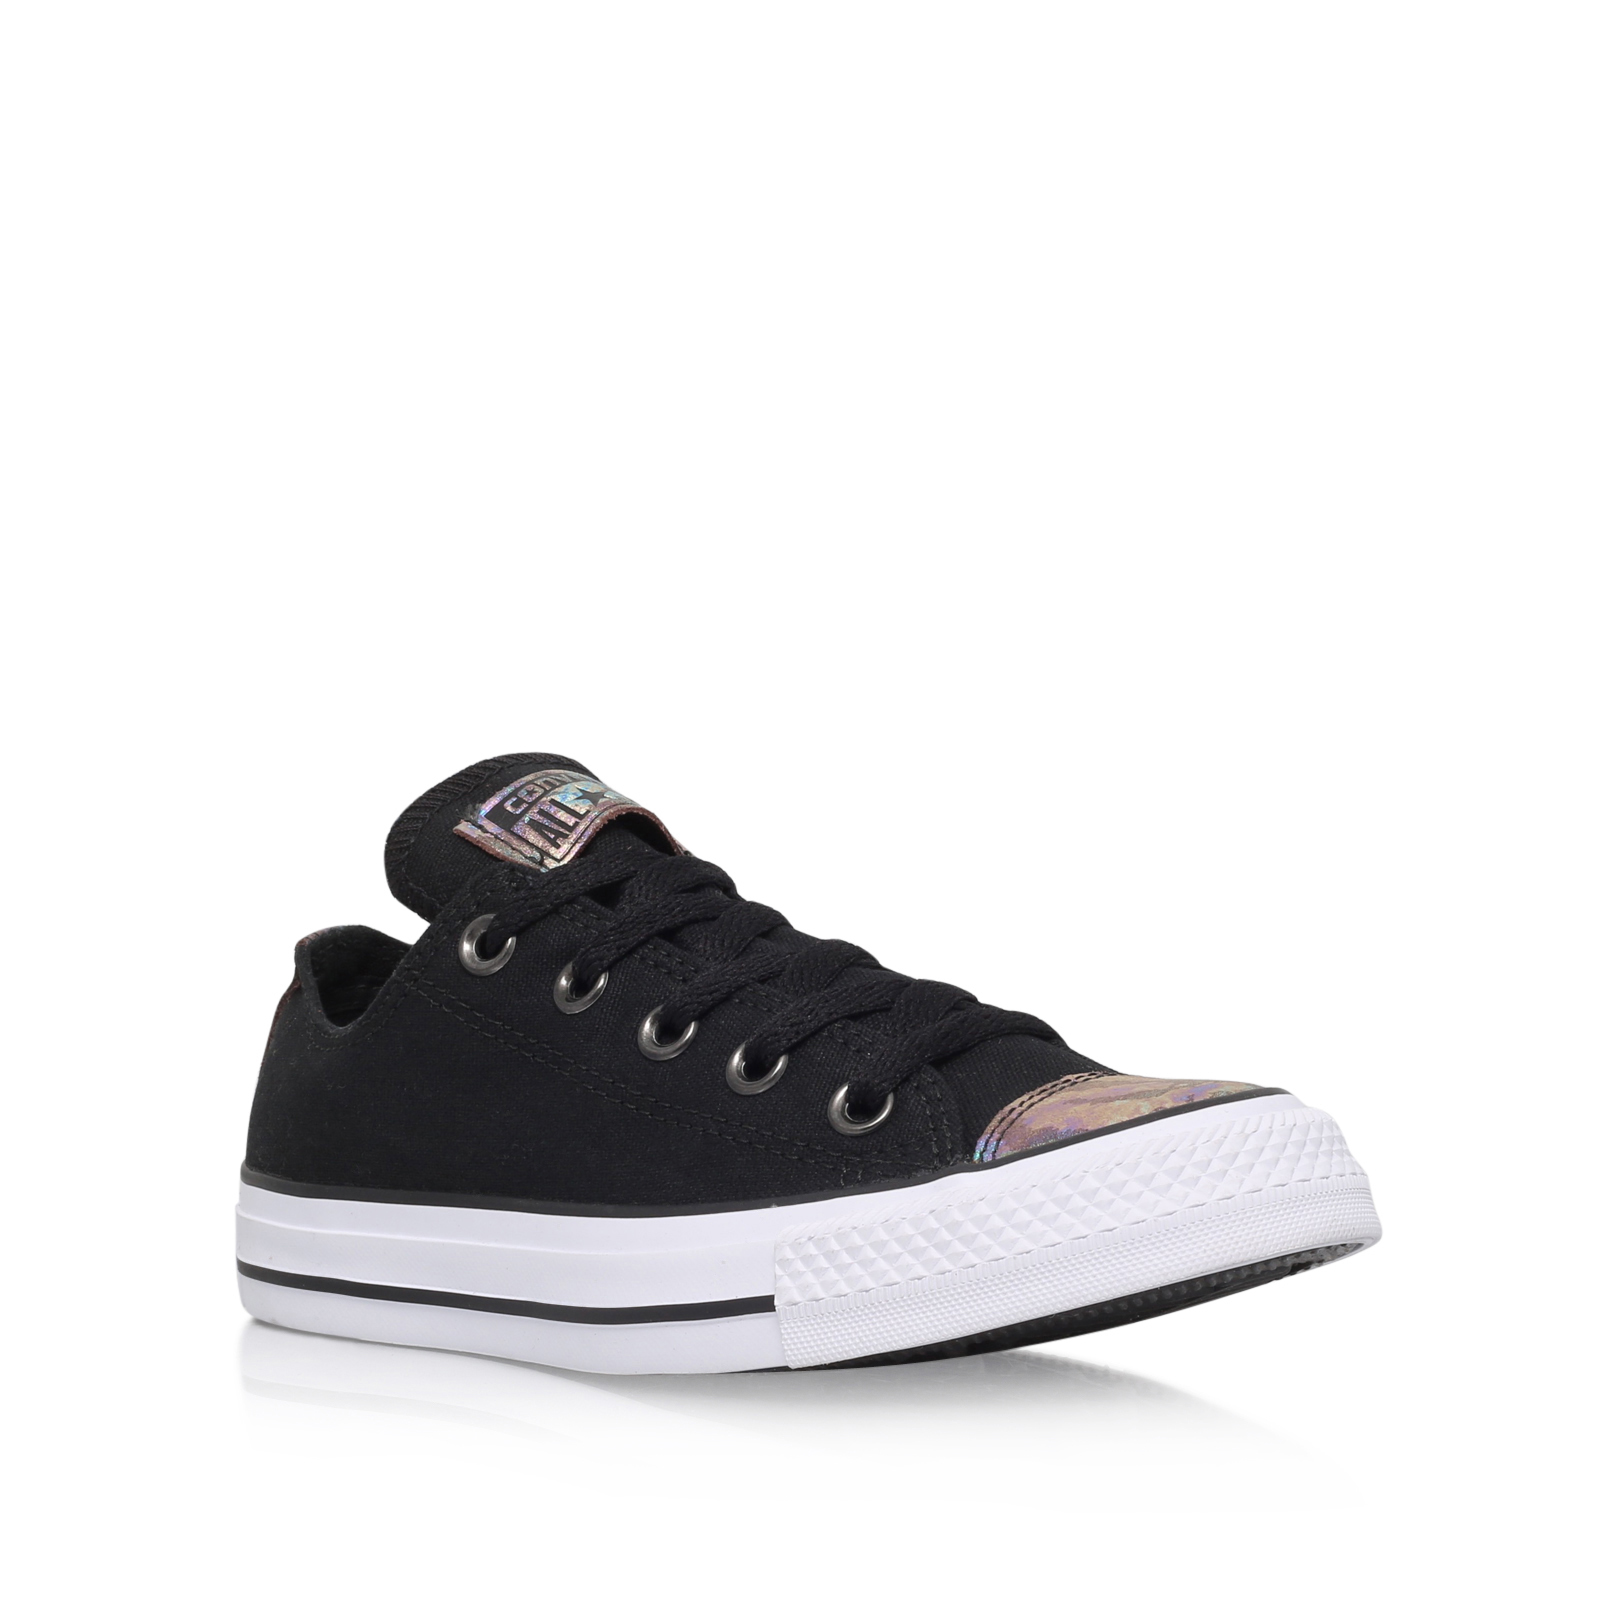 CT OIL SLICK TOE LOW